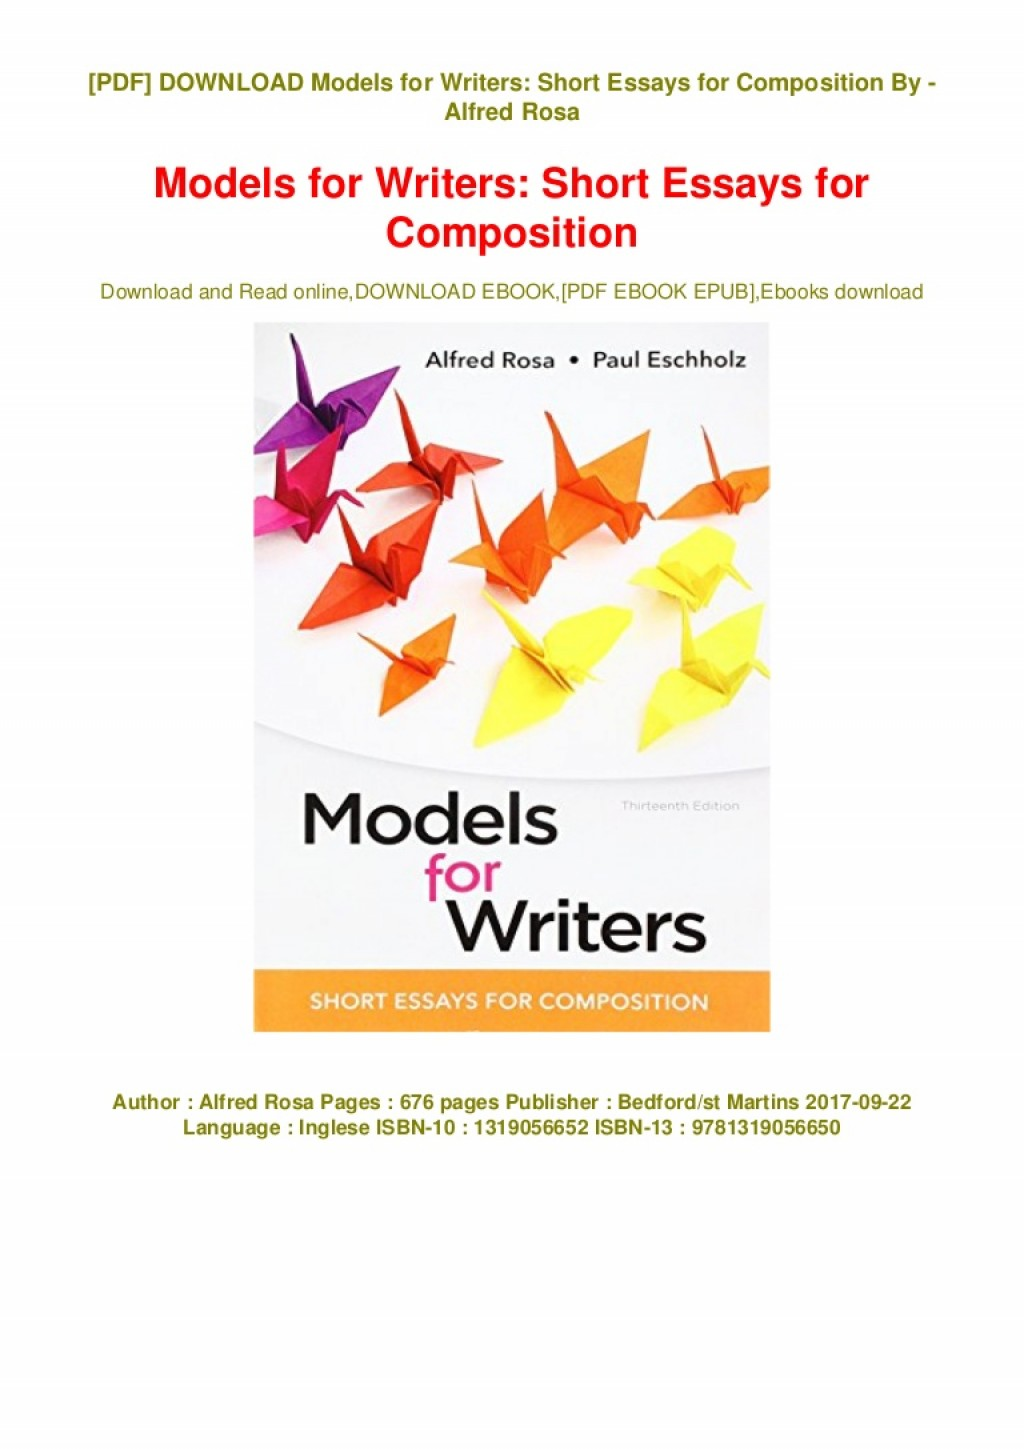 009 Essay Example Models For Writers Short Essays Composition Pdf Ebook Thumbnail Singular 12th Edition 13th Large